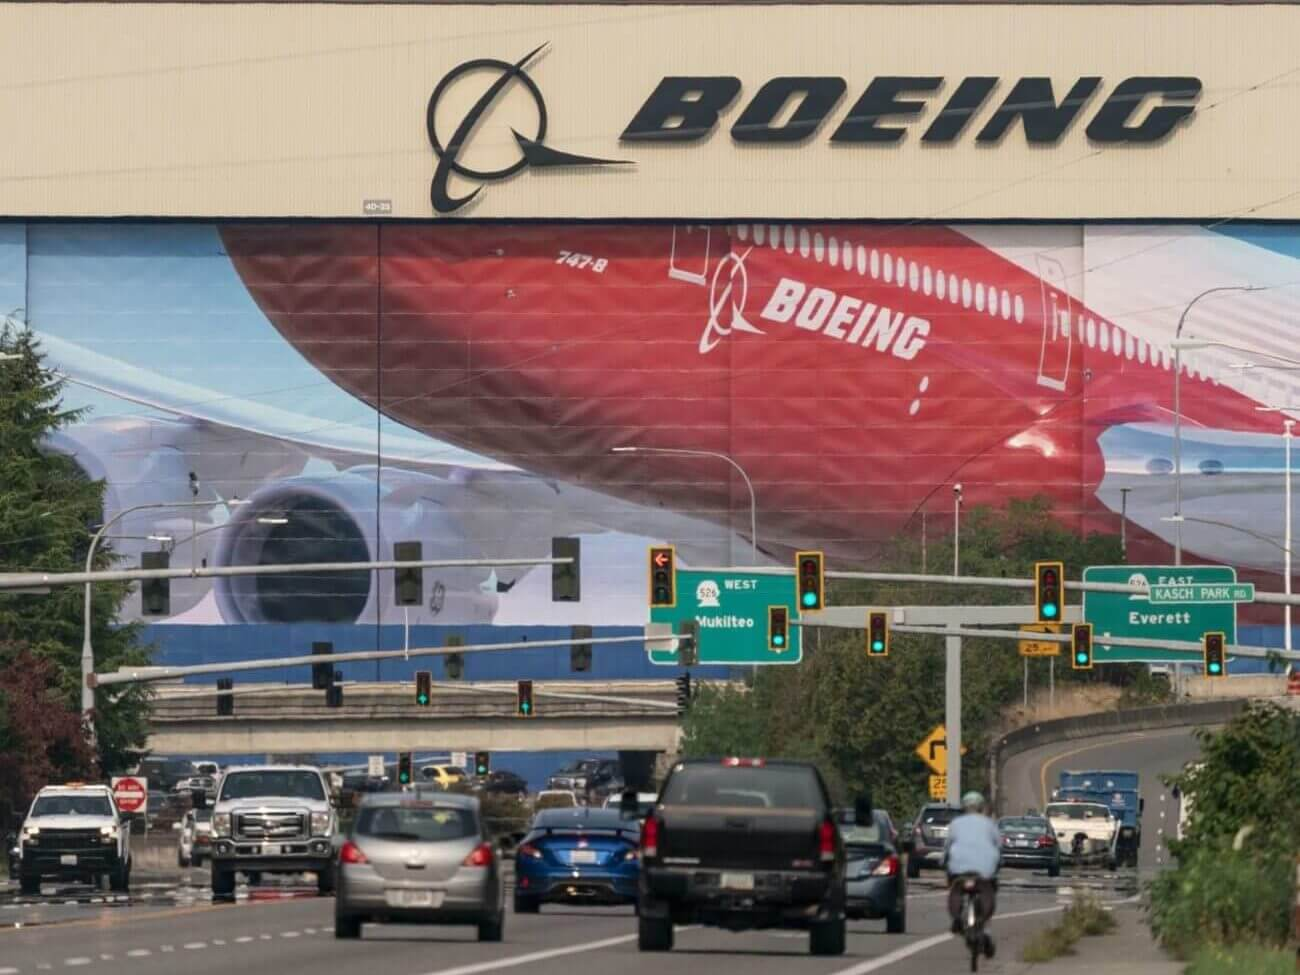 Boeing Is the Most up-to-date Firm to Gain away a Adverse Industry Ambiance